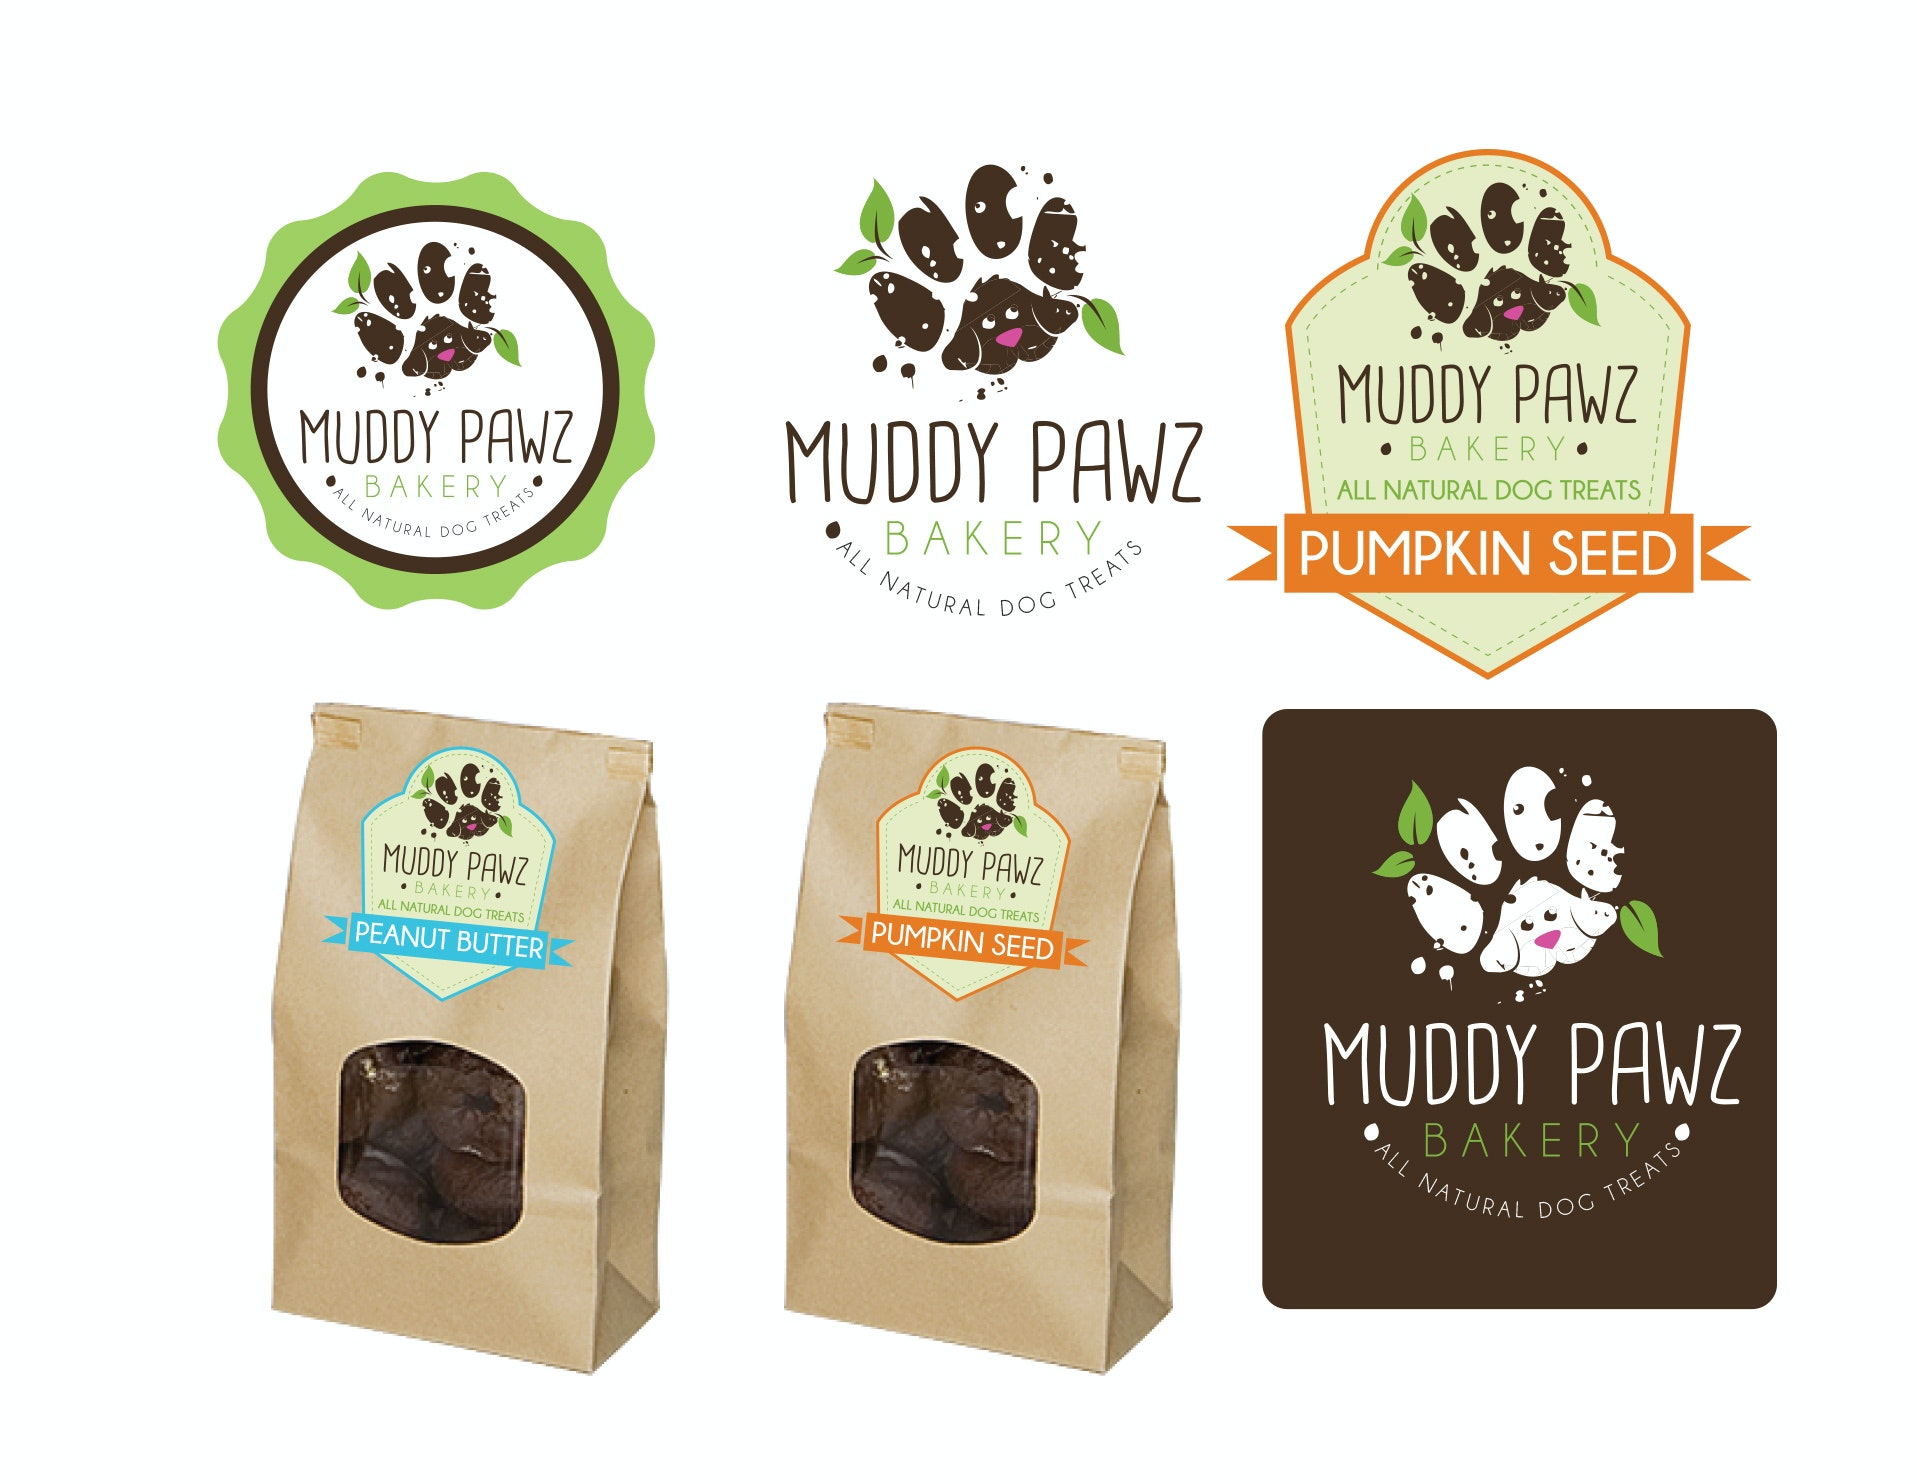 Muddy Pawz Bakery